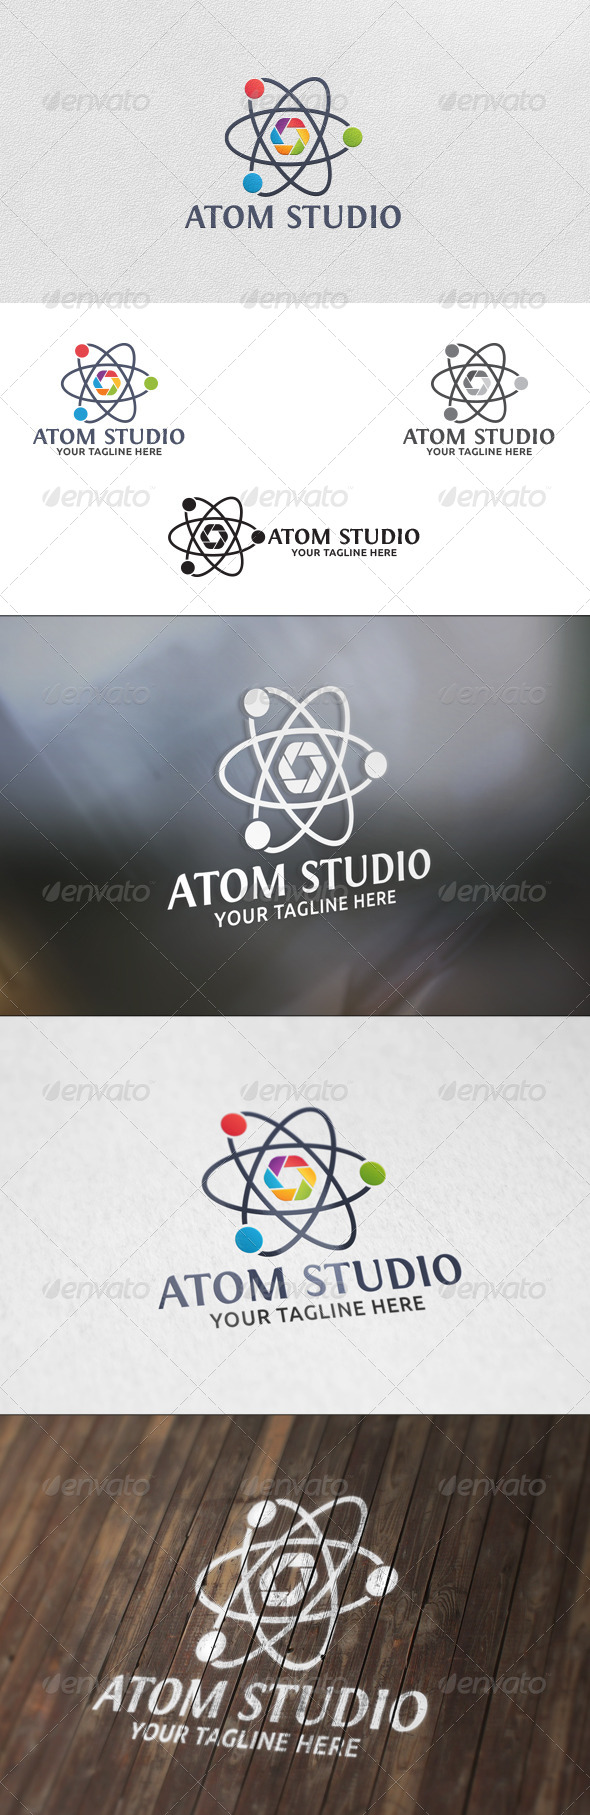 GraphicRiver Atom Studio Logo Template 5944649